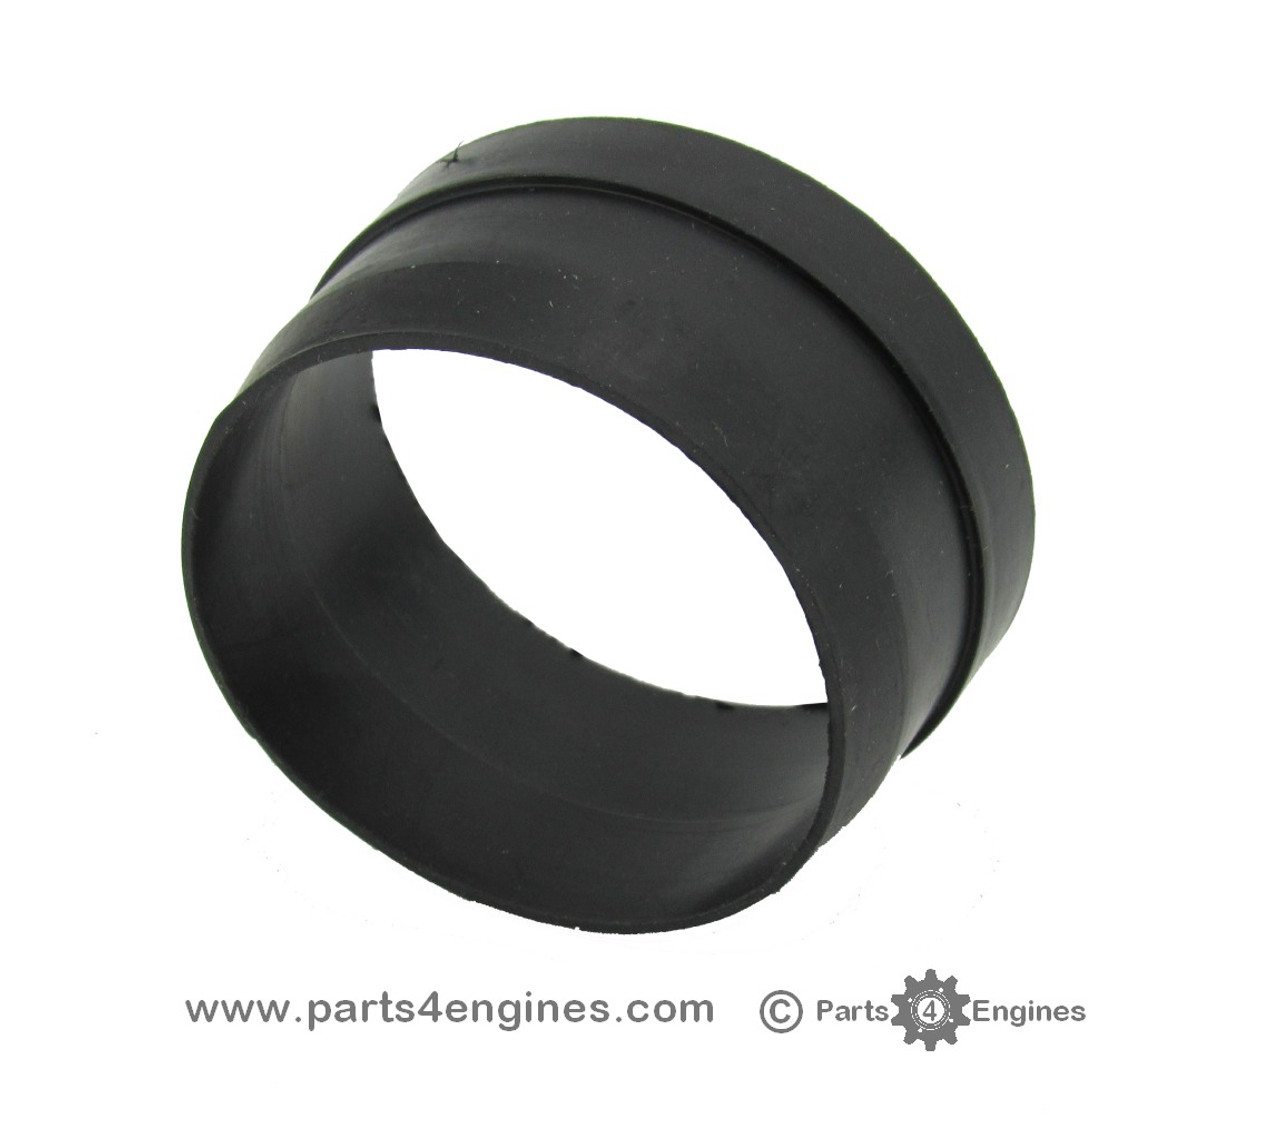 Perkins Prima M80T Heat exchanger tube stack seal from parts4engines.com